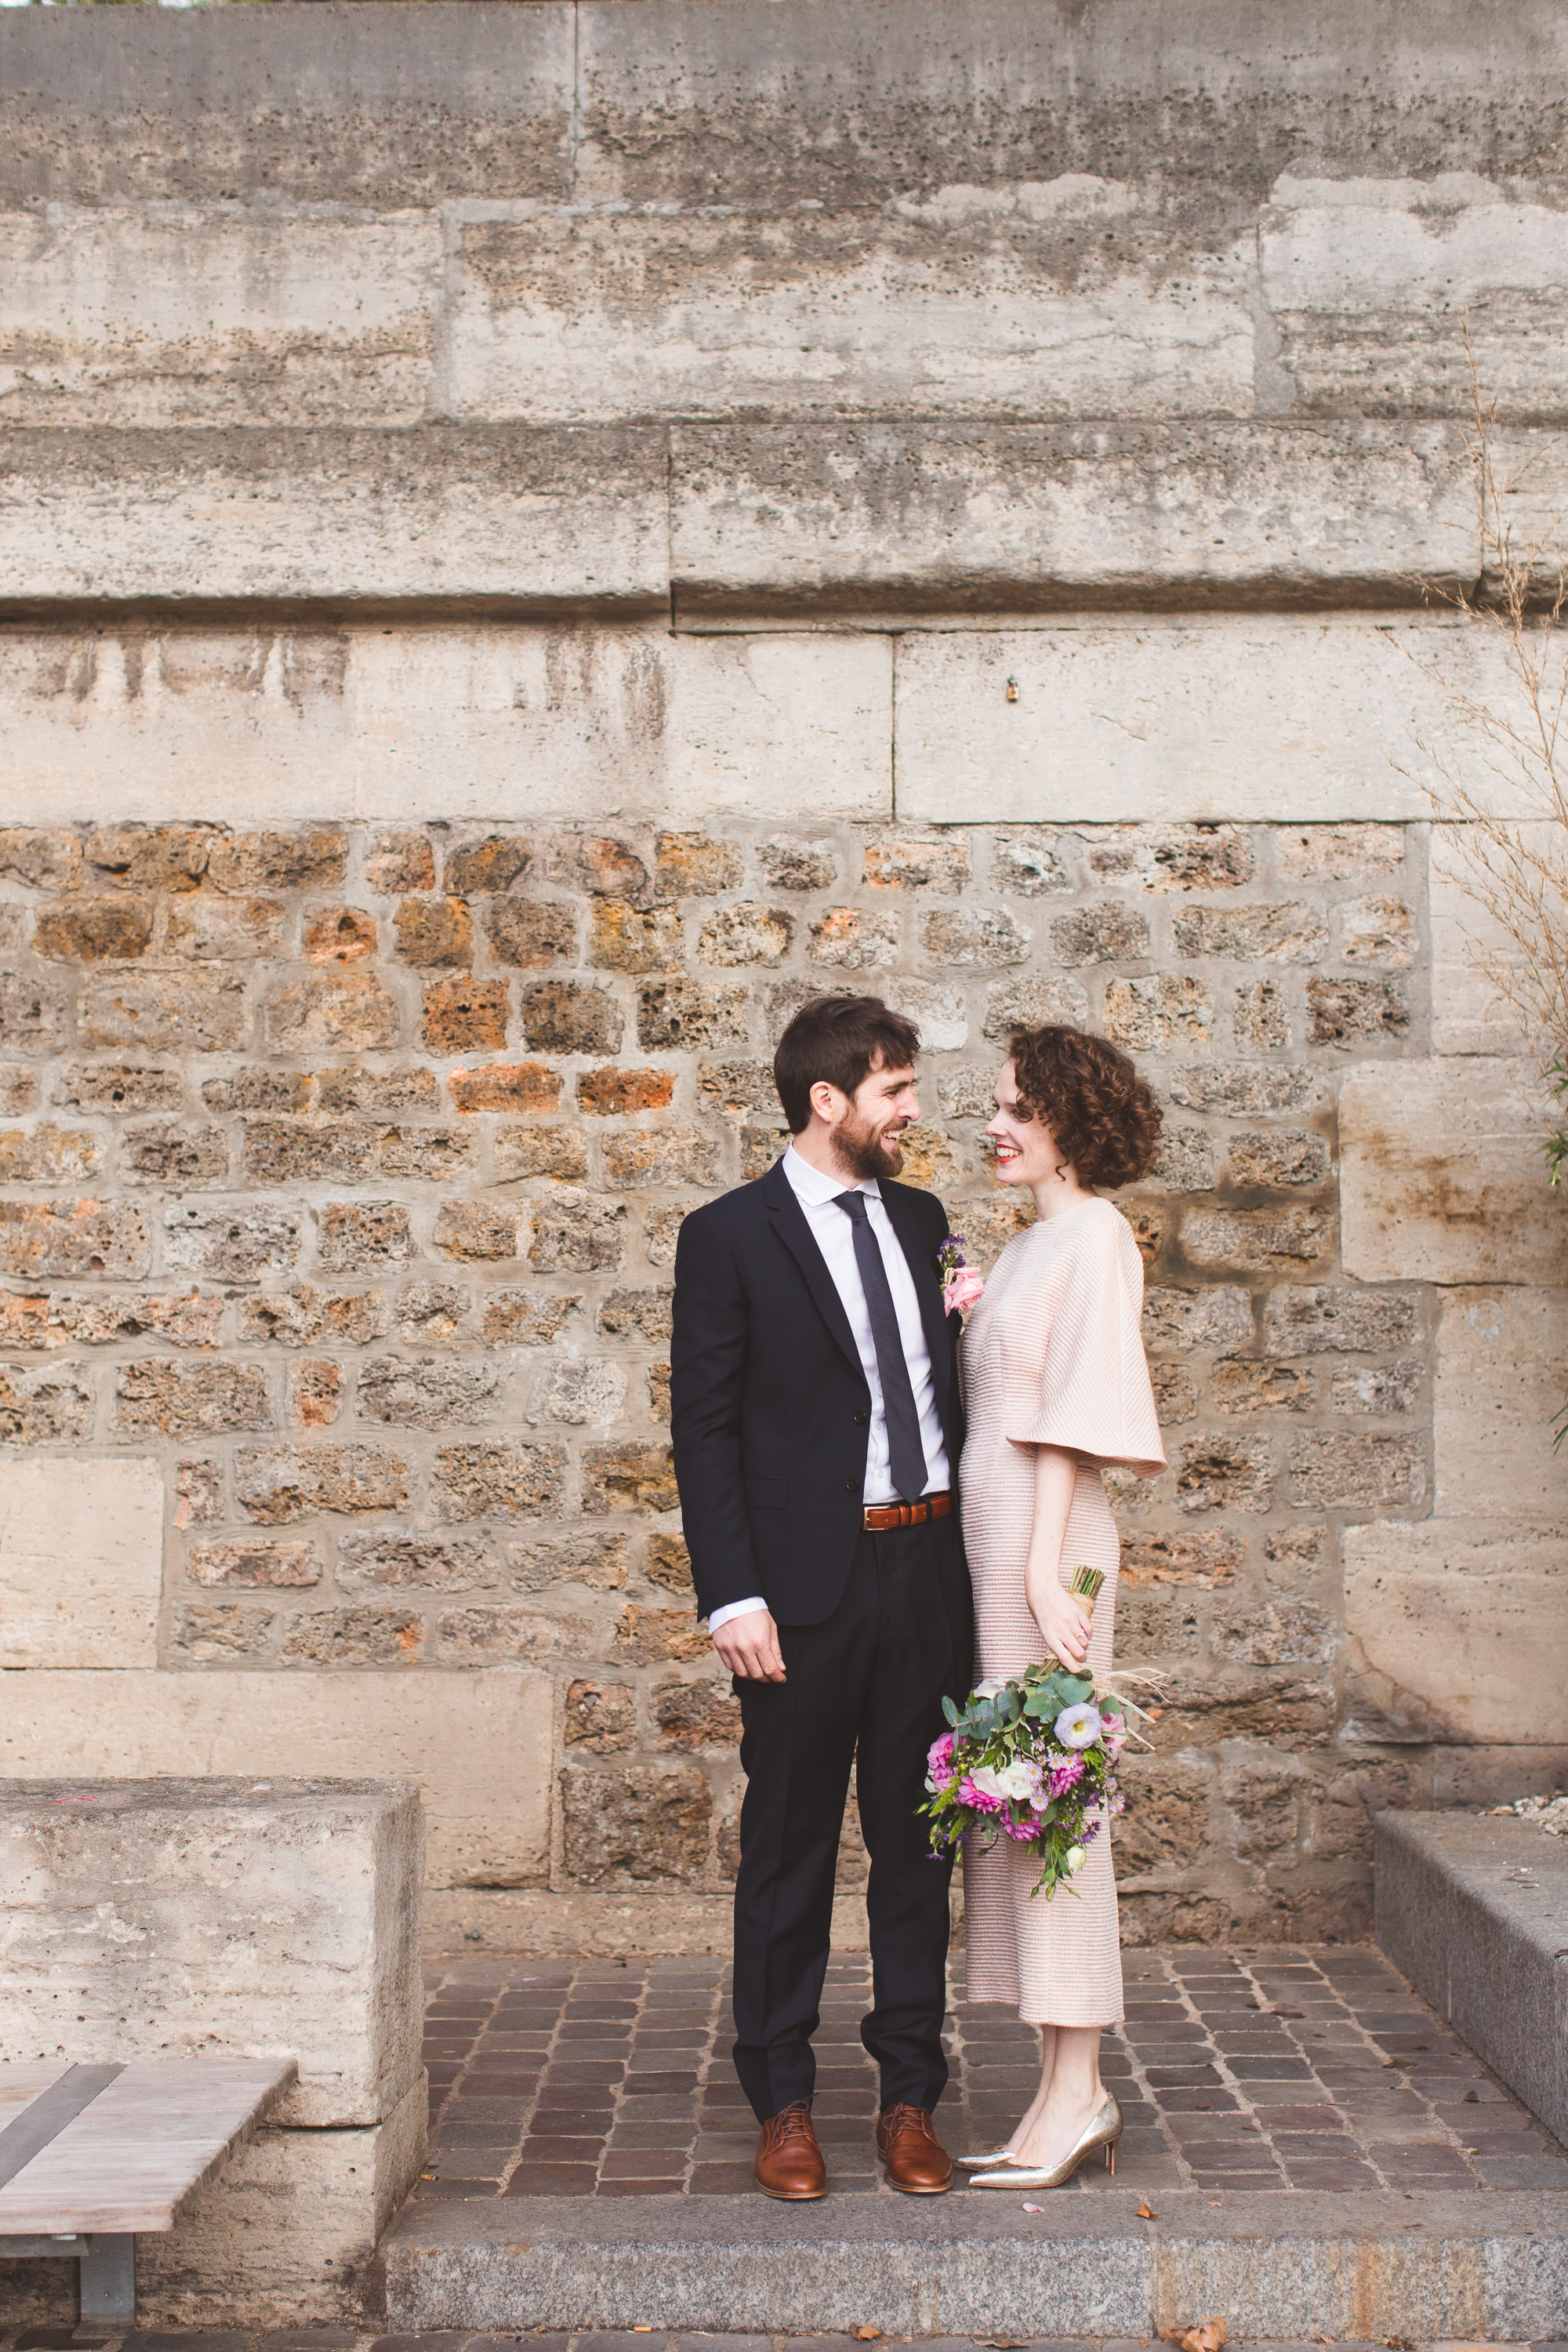 Emma&Nico_WeddingParis_by_UlaBlocksage-152.jpg